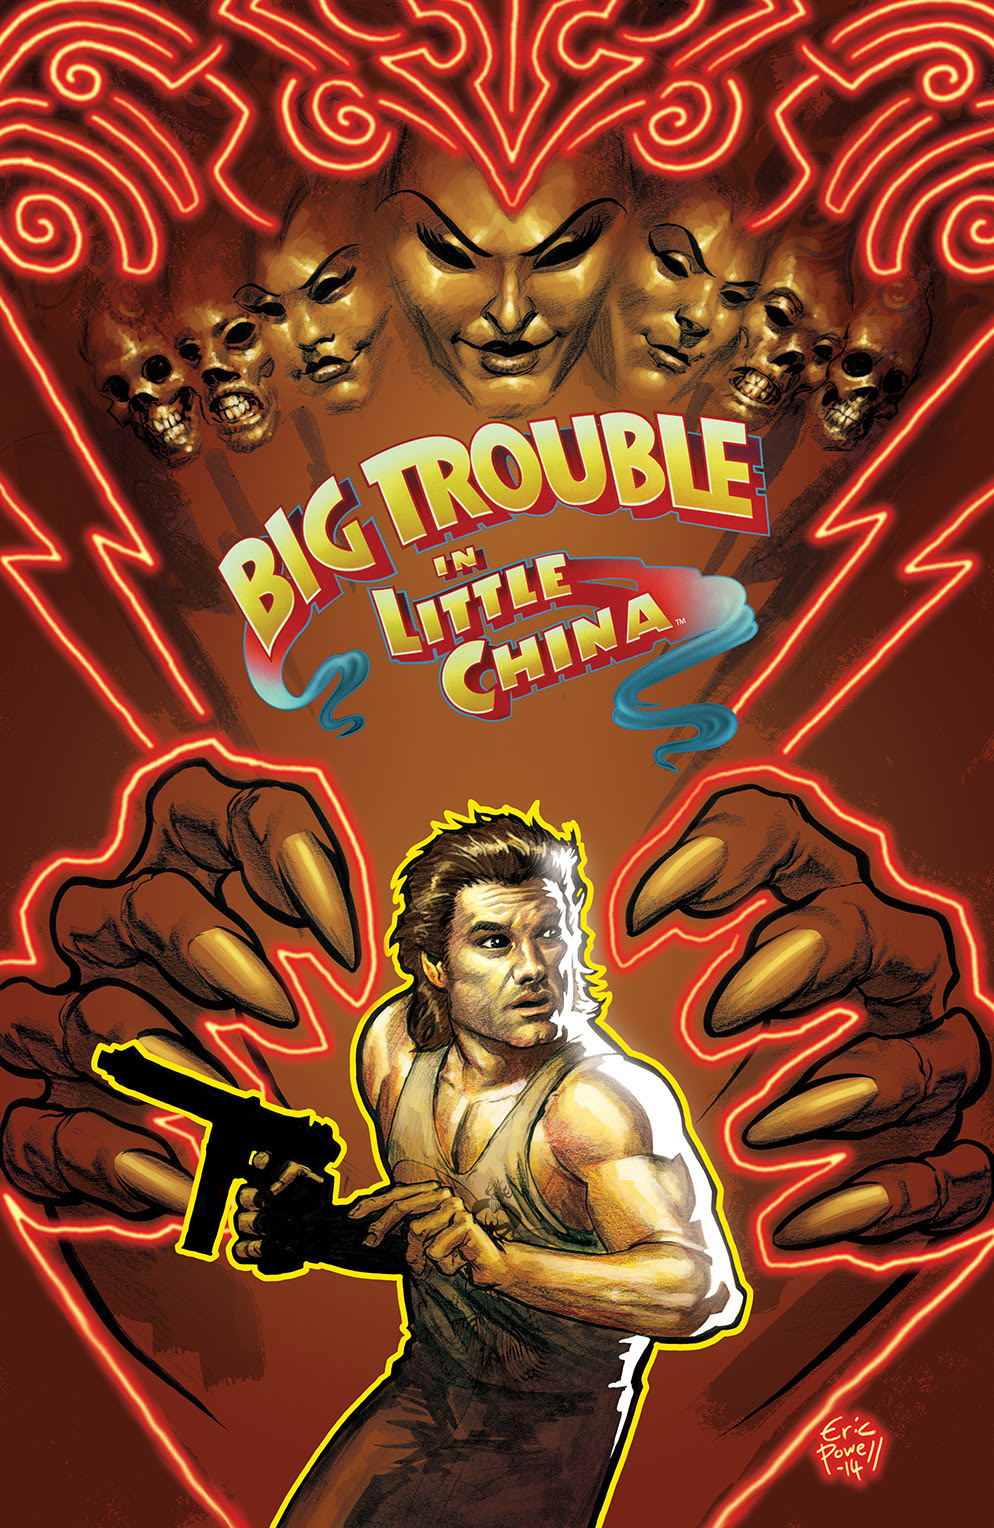 BIG TROUBLE IN LITTLE CHINA #3 Cover A by Eric Powell